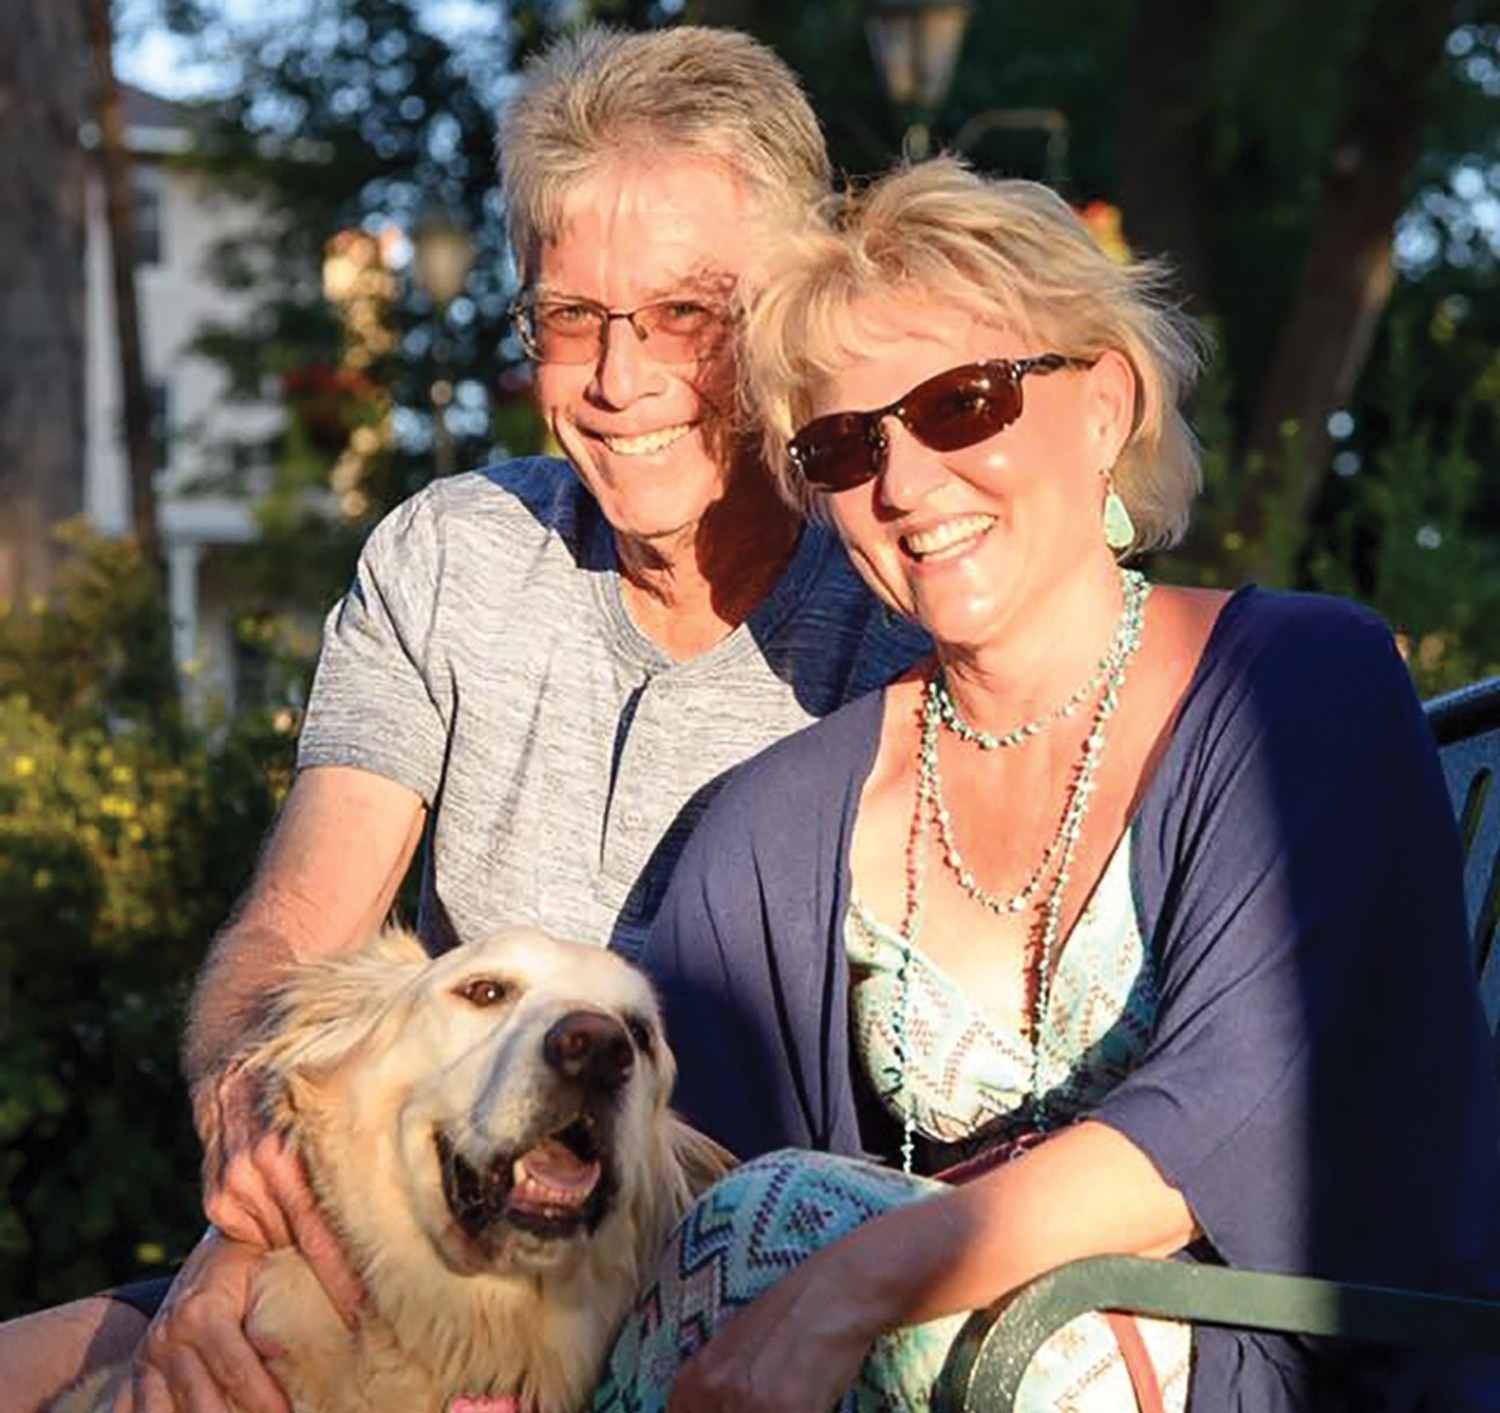 Dating coach Julie Ferman (with her husband Gil and dog Biscuit) says you can require just about anything from a relationship—as long as you're upfront about it.